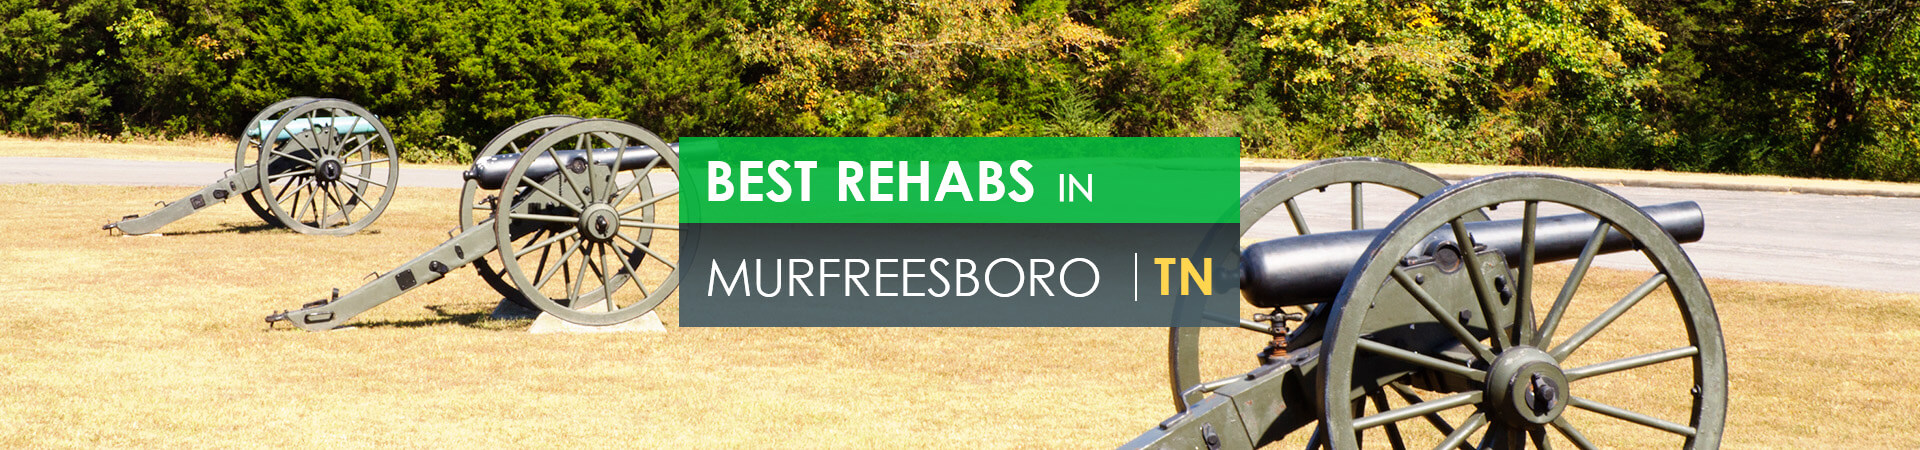 Best rehabs in Murfreesboro, TN